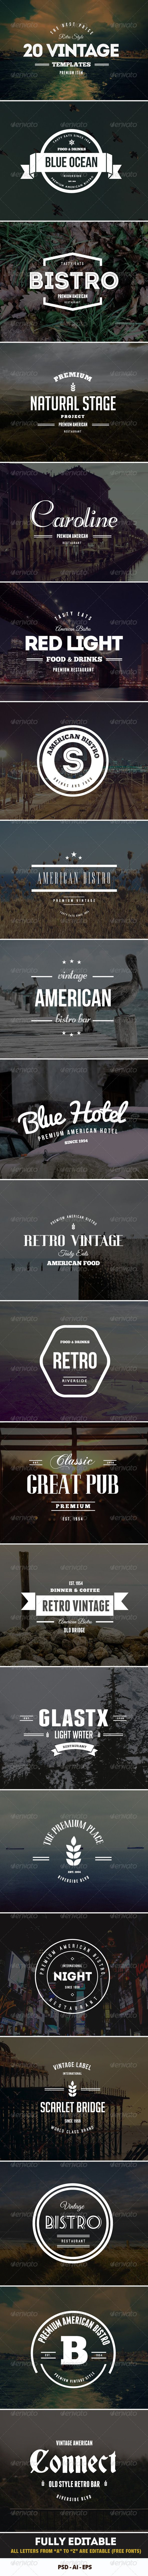 20 Vintage Labels & Badges / Logos / Insignias #photoshop #psd #badges #coffee • Available here → https://graphicriver.net/item/20-vintage-labels-badges-logos-insignias/7967547?ref=pxcr